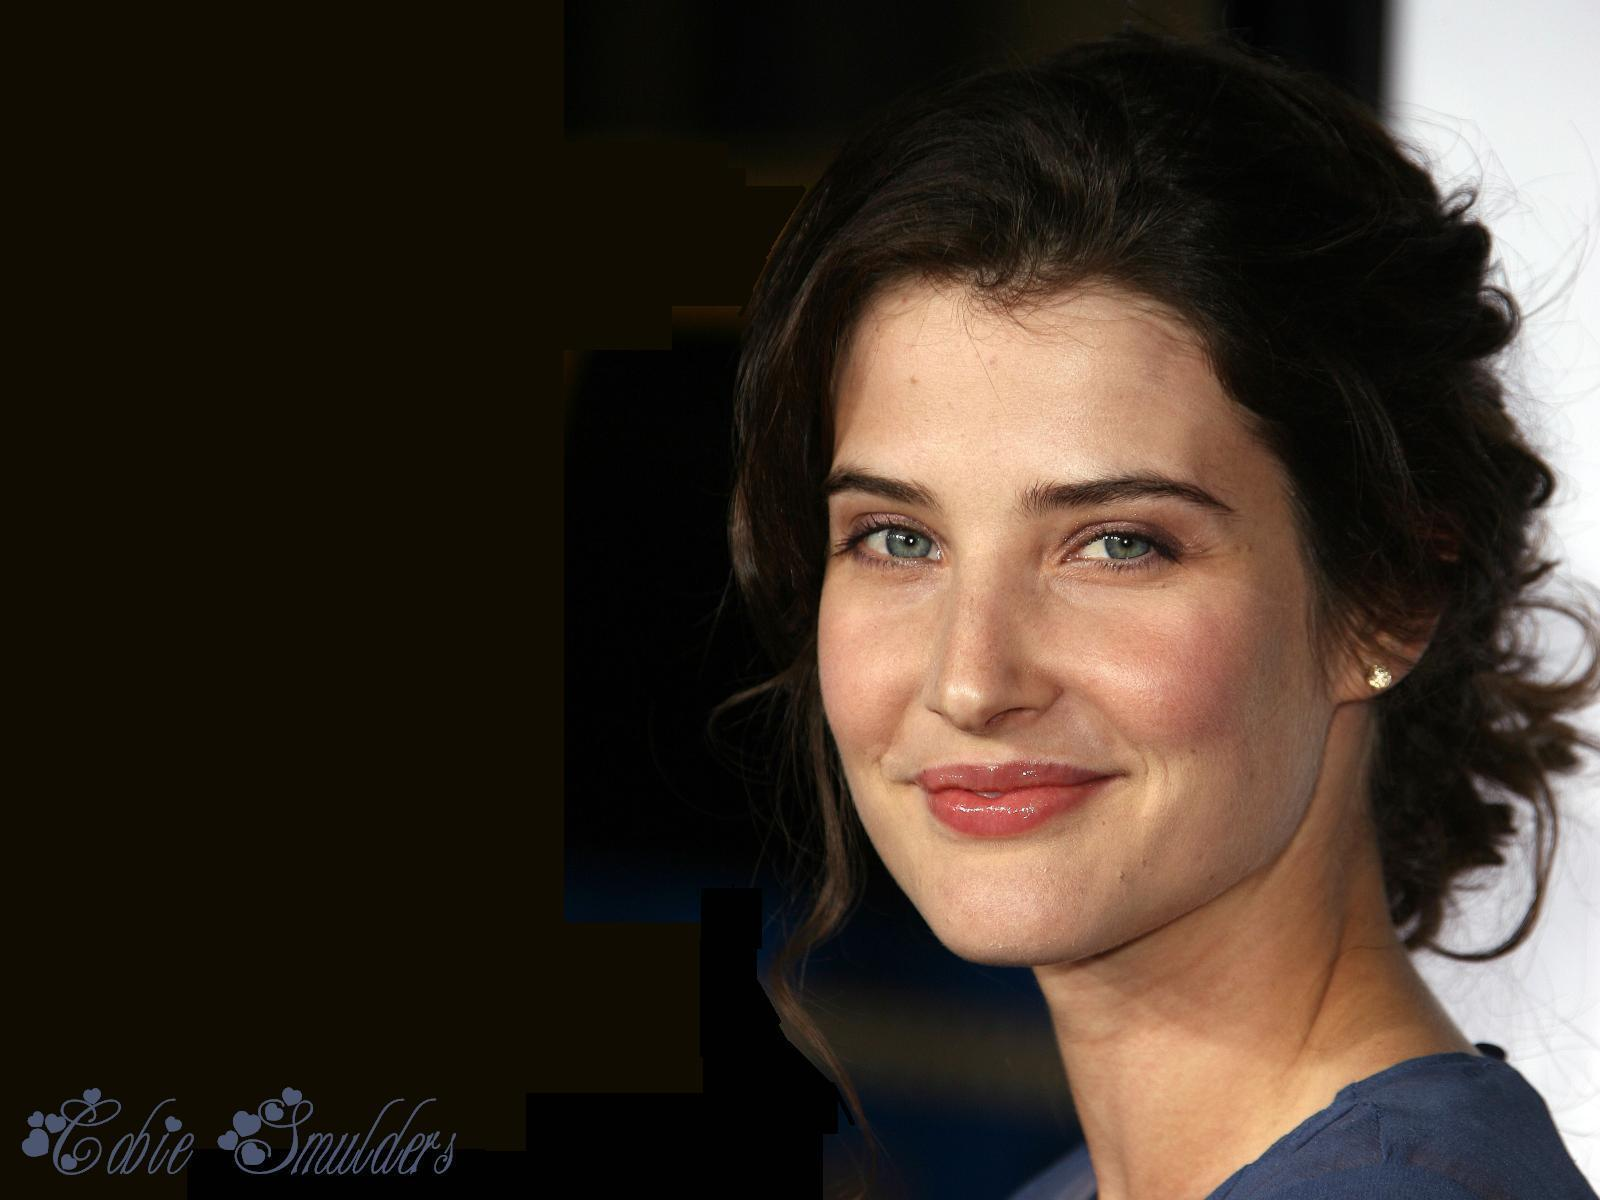 1600x1200 - Cobie Smulders Wallpapers 5